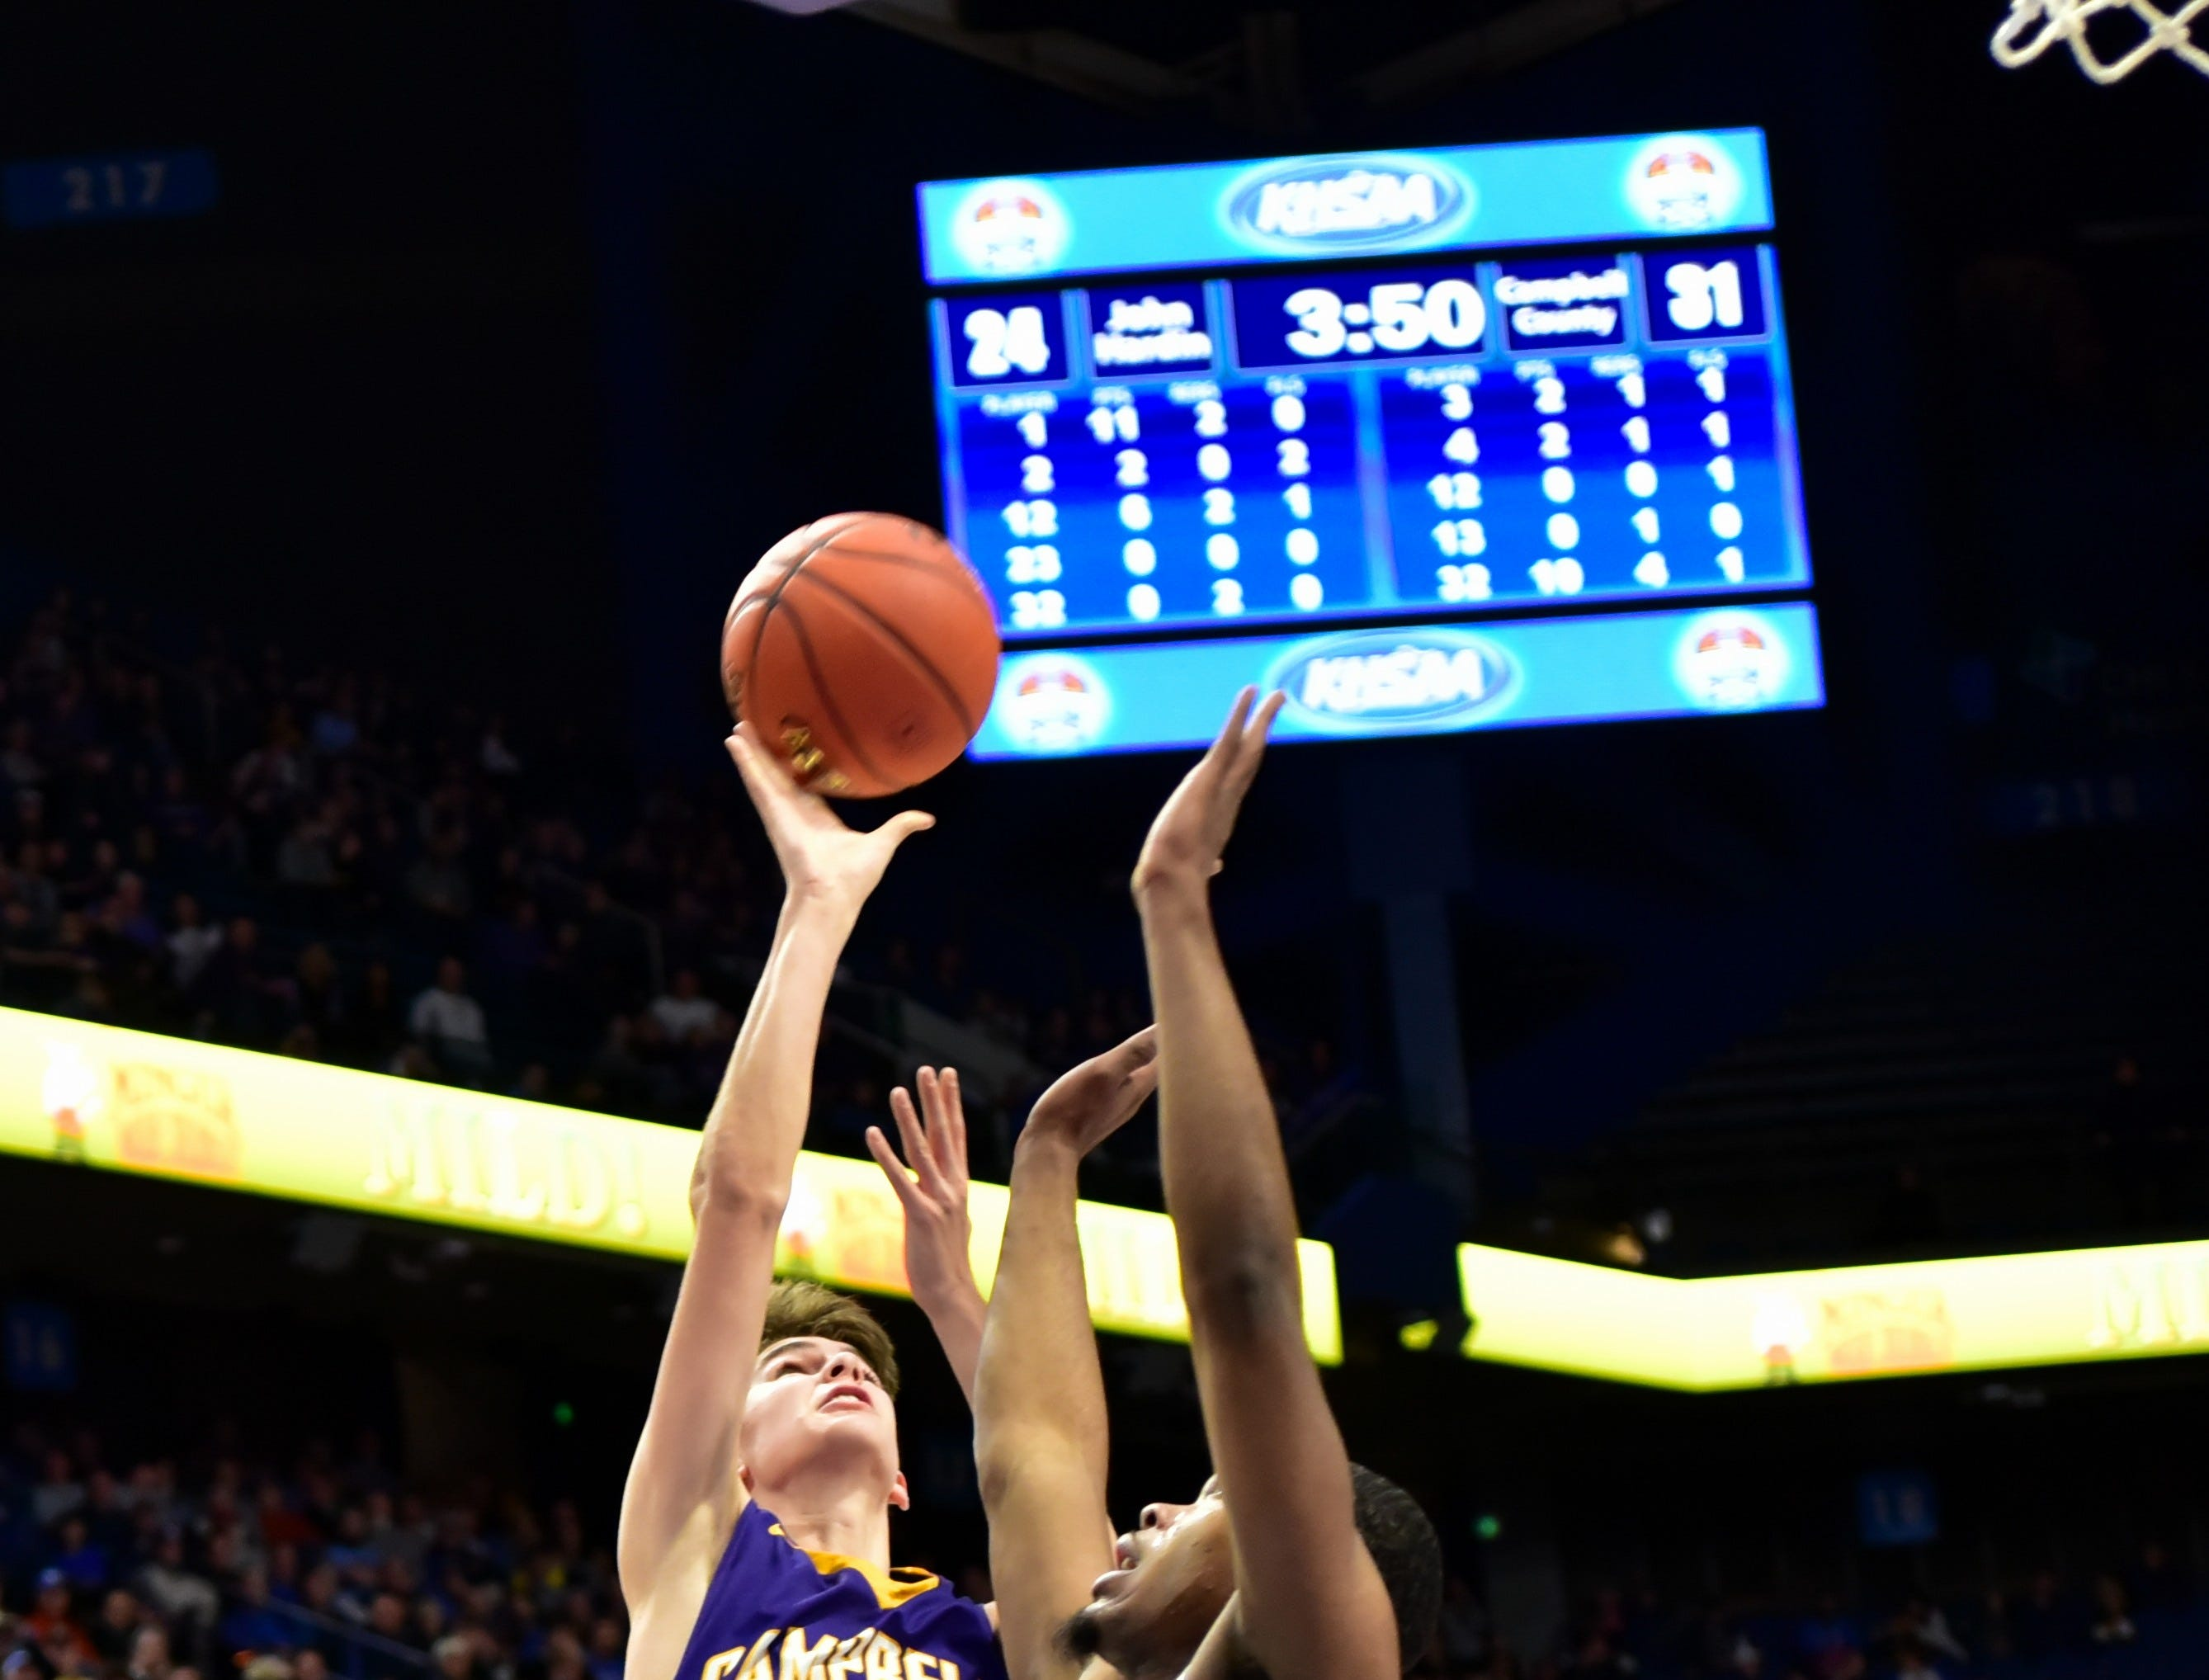 Jordan Gross (13) of Campbell County pushes up a short jump shot for a Camels basket at the KHSAA Sweet 16 Tournament at Rupp Arena in Lexington, KY, March 6, 2019